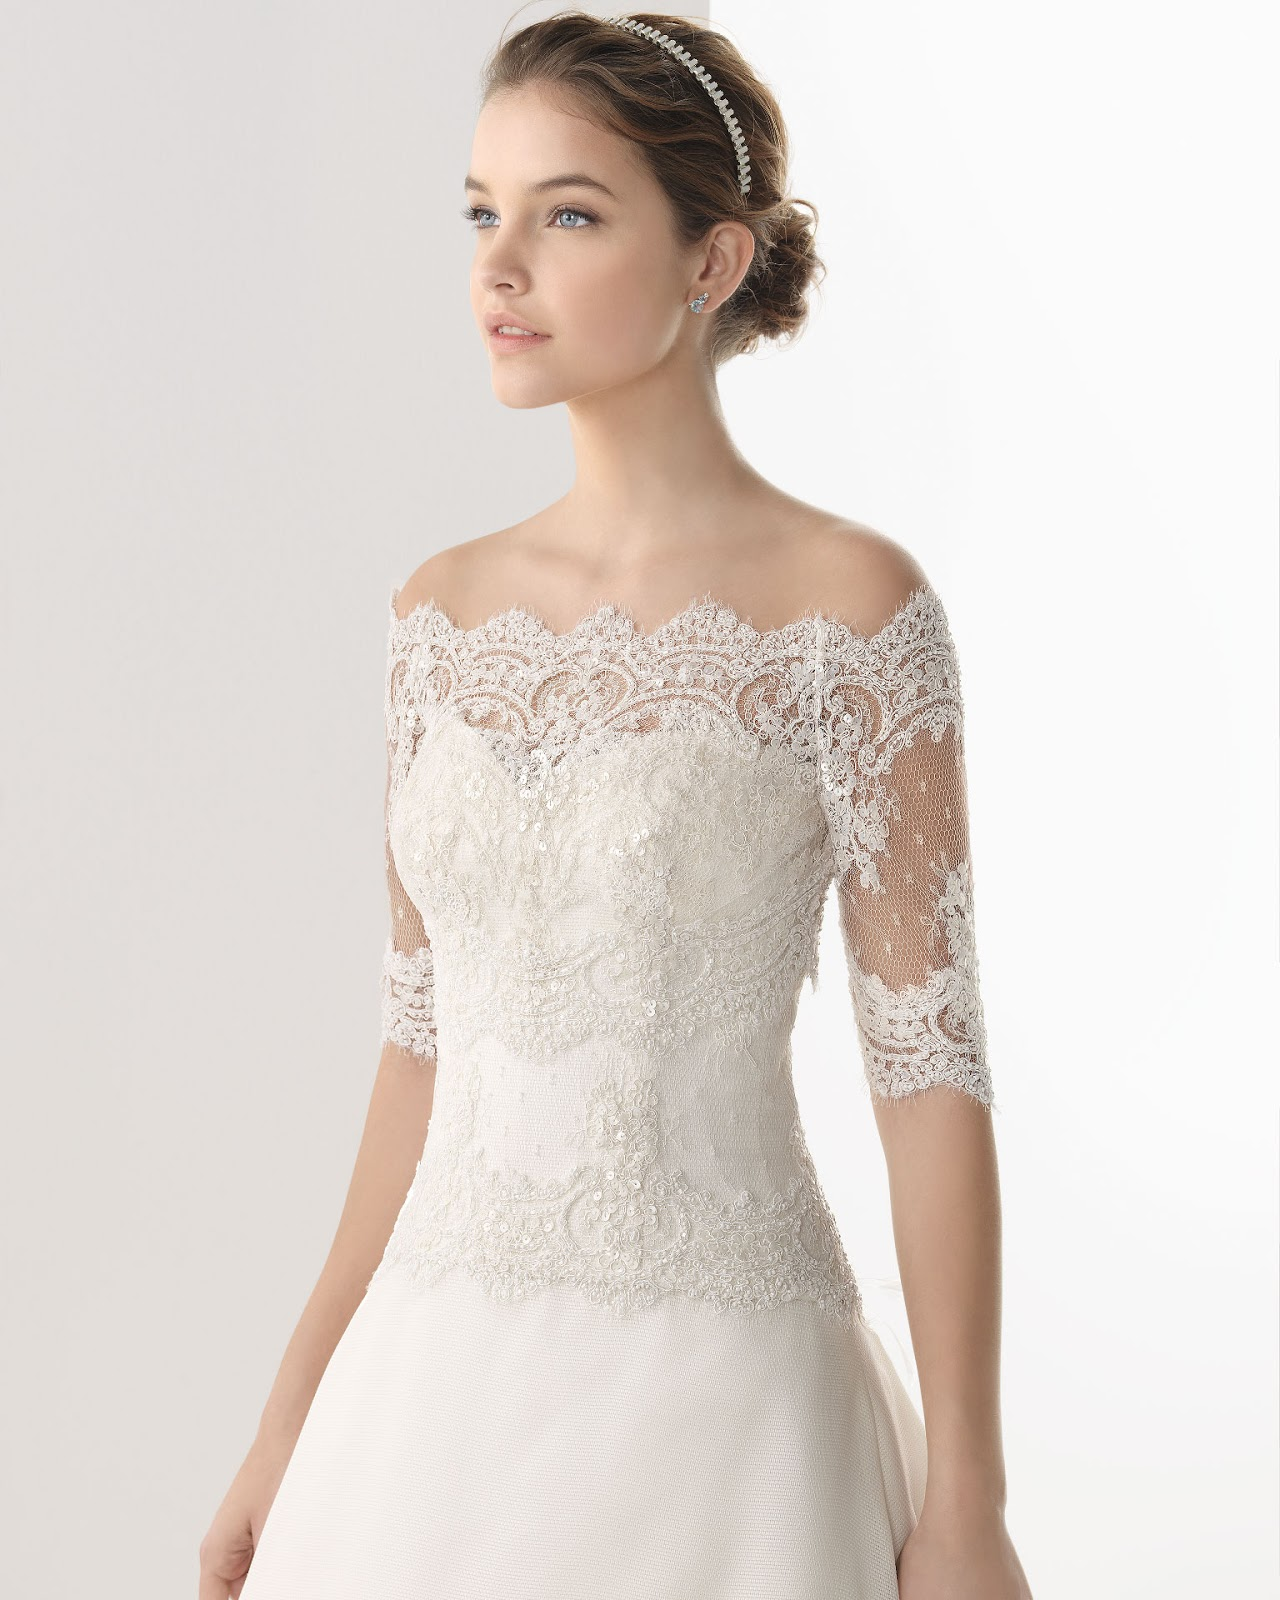 Wedding Dresses  Lace Sleeves : Dressybridal wedding dresses with lace long sleeves and